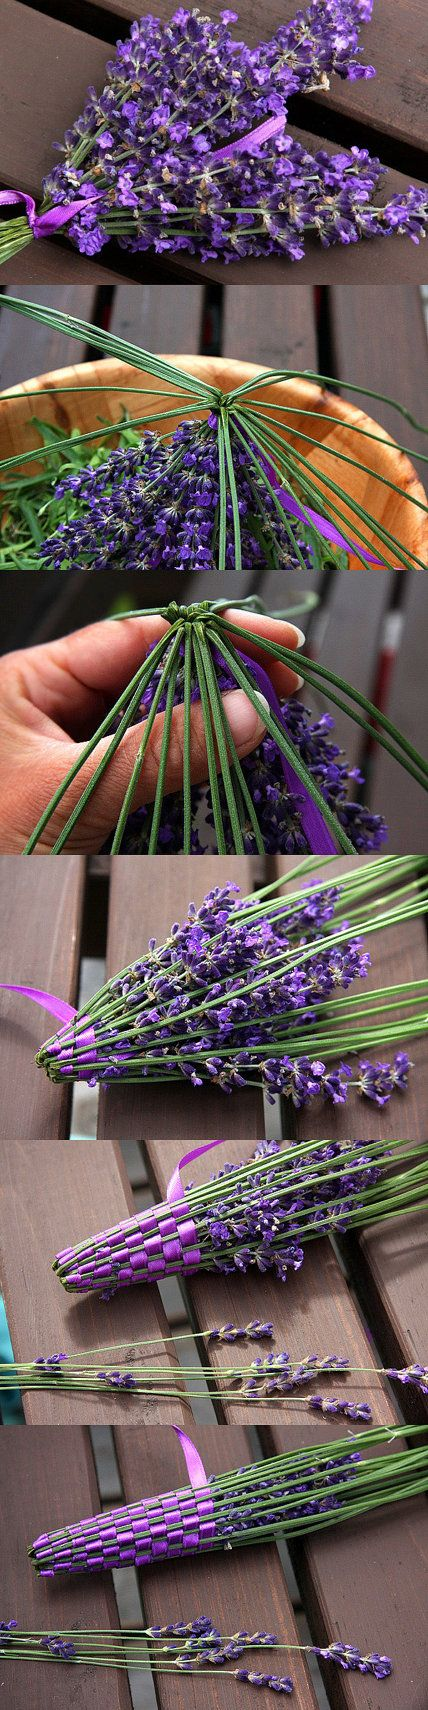 Organic French Lavender Wand    I observed this ancient technique of lavender wand making in Southern France. The heavenly scent of lavender makes the weaving a very pleasurable meditation.    The lavender has to be picked fresh for each wand. The best time of the day is early in the morning. The flowers have to be perfectly opened.    The wand length is aproximately 10 inches; it can be made longer or shorted if requested. The colors of the ribbons were chosen to compliment the purple and…